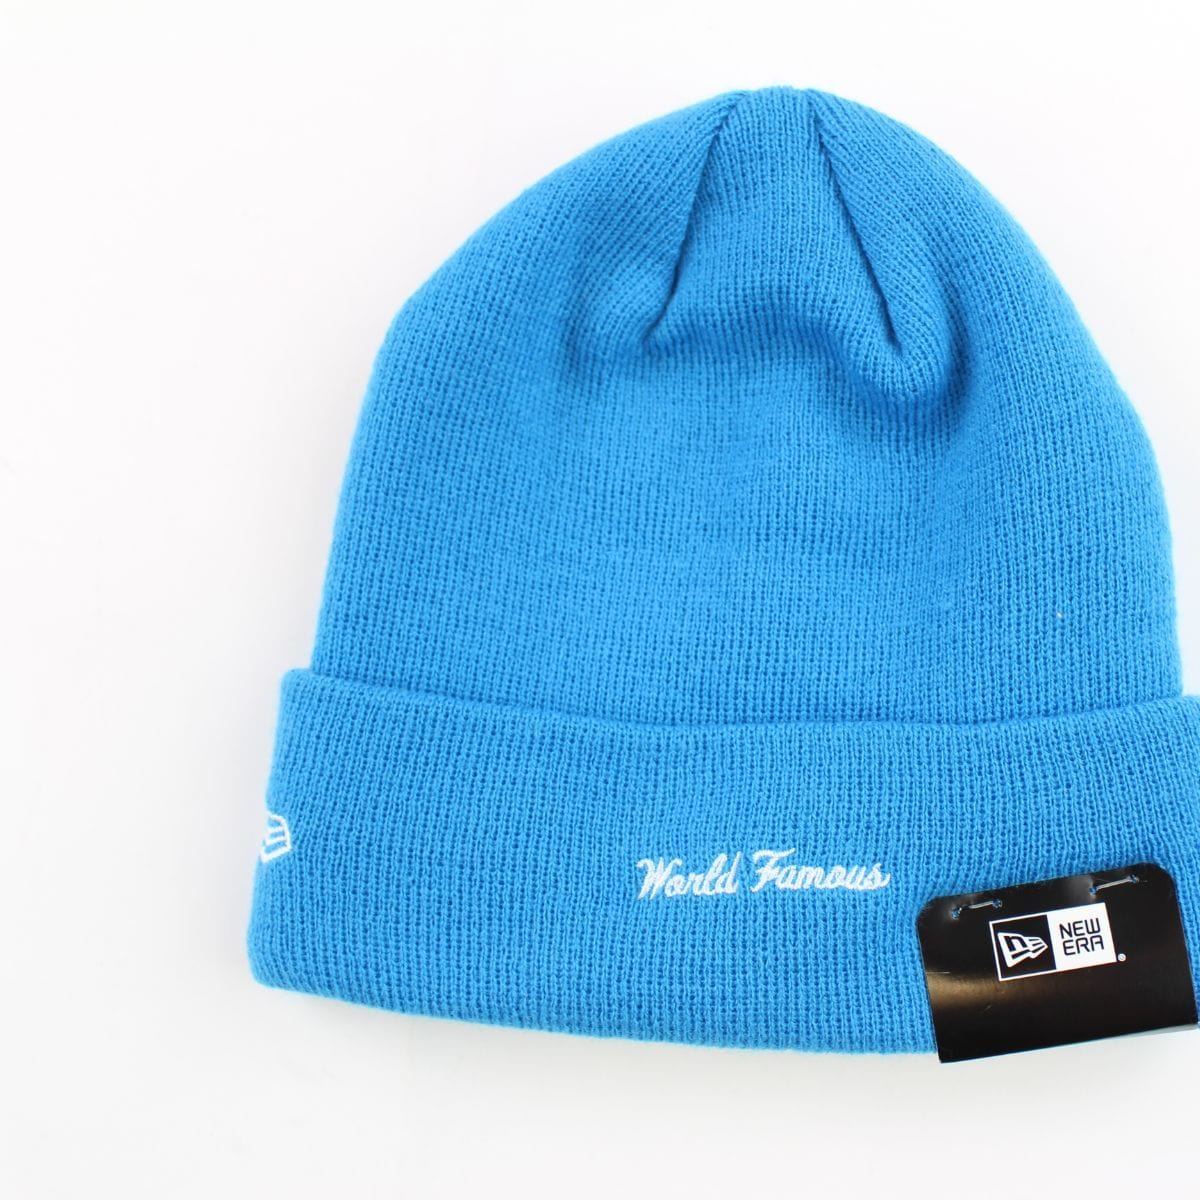 Supreme x New Era Royal blue box logo Beanie - SaruGeneral